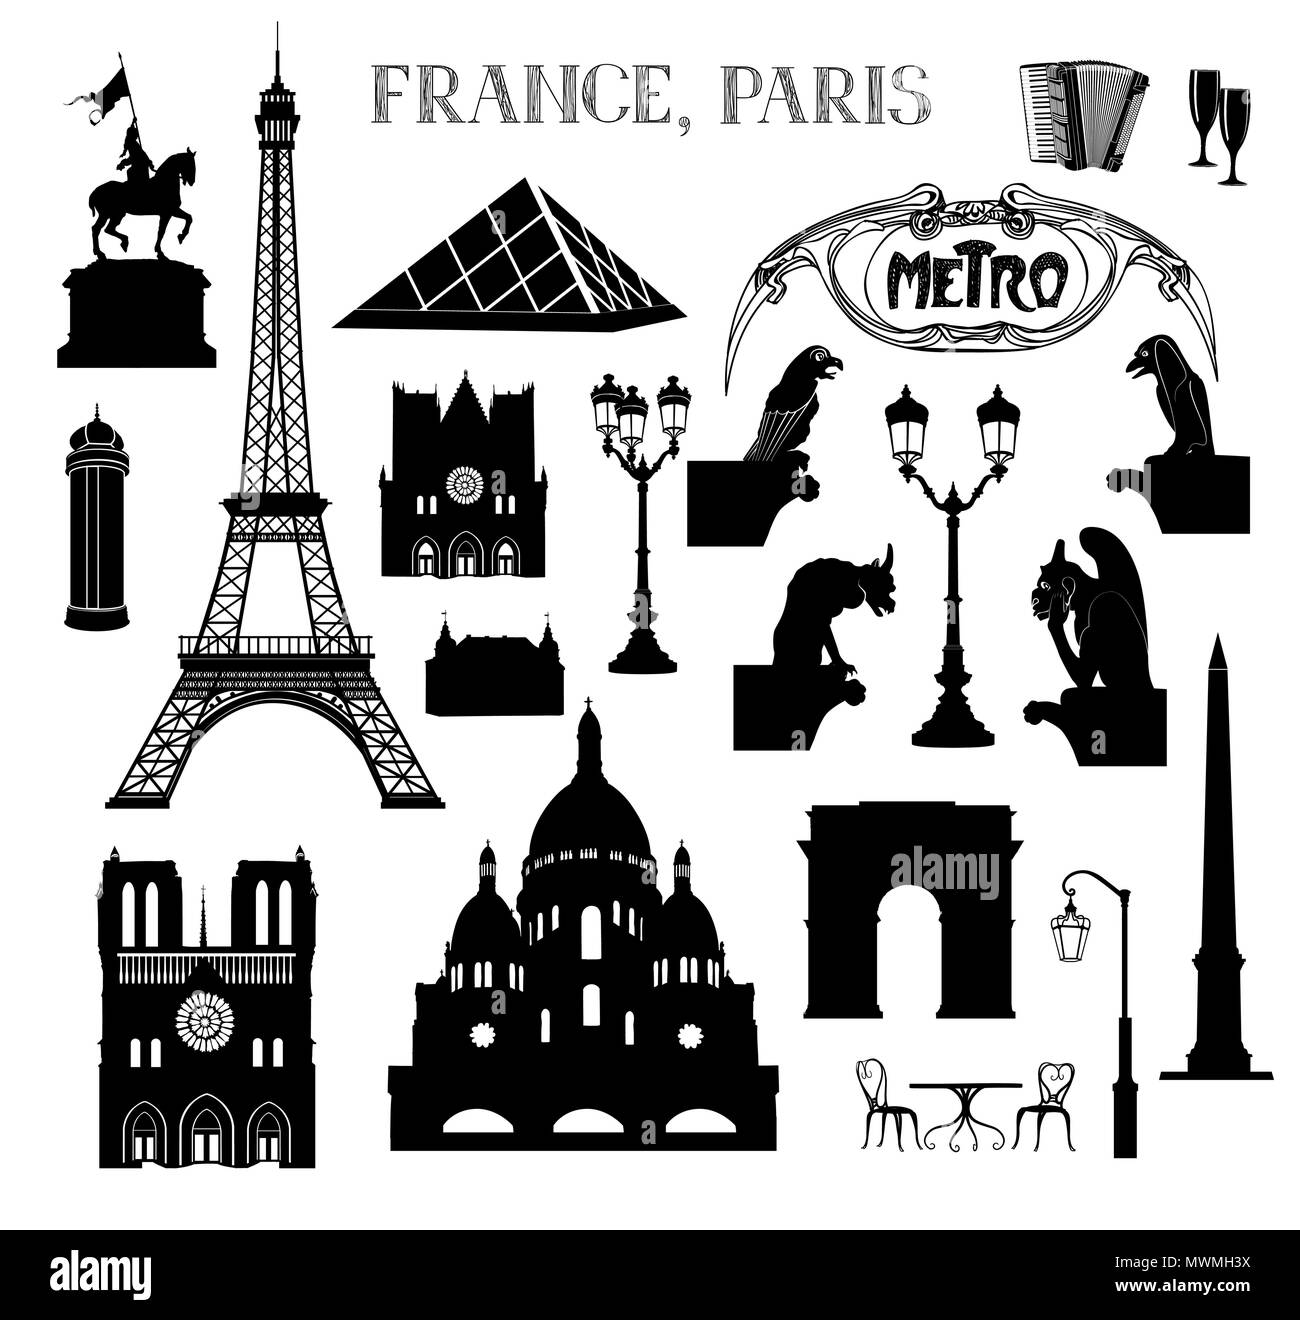 Travel Paris icon set. Vacation in Europe design elements. Travel to visit famous places of France  silhouettes over white background. Landmark collec - Stock Image